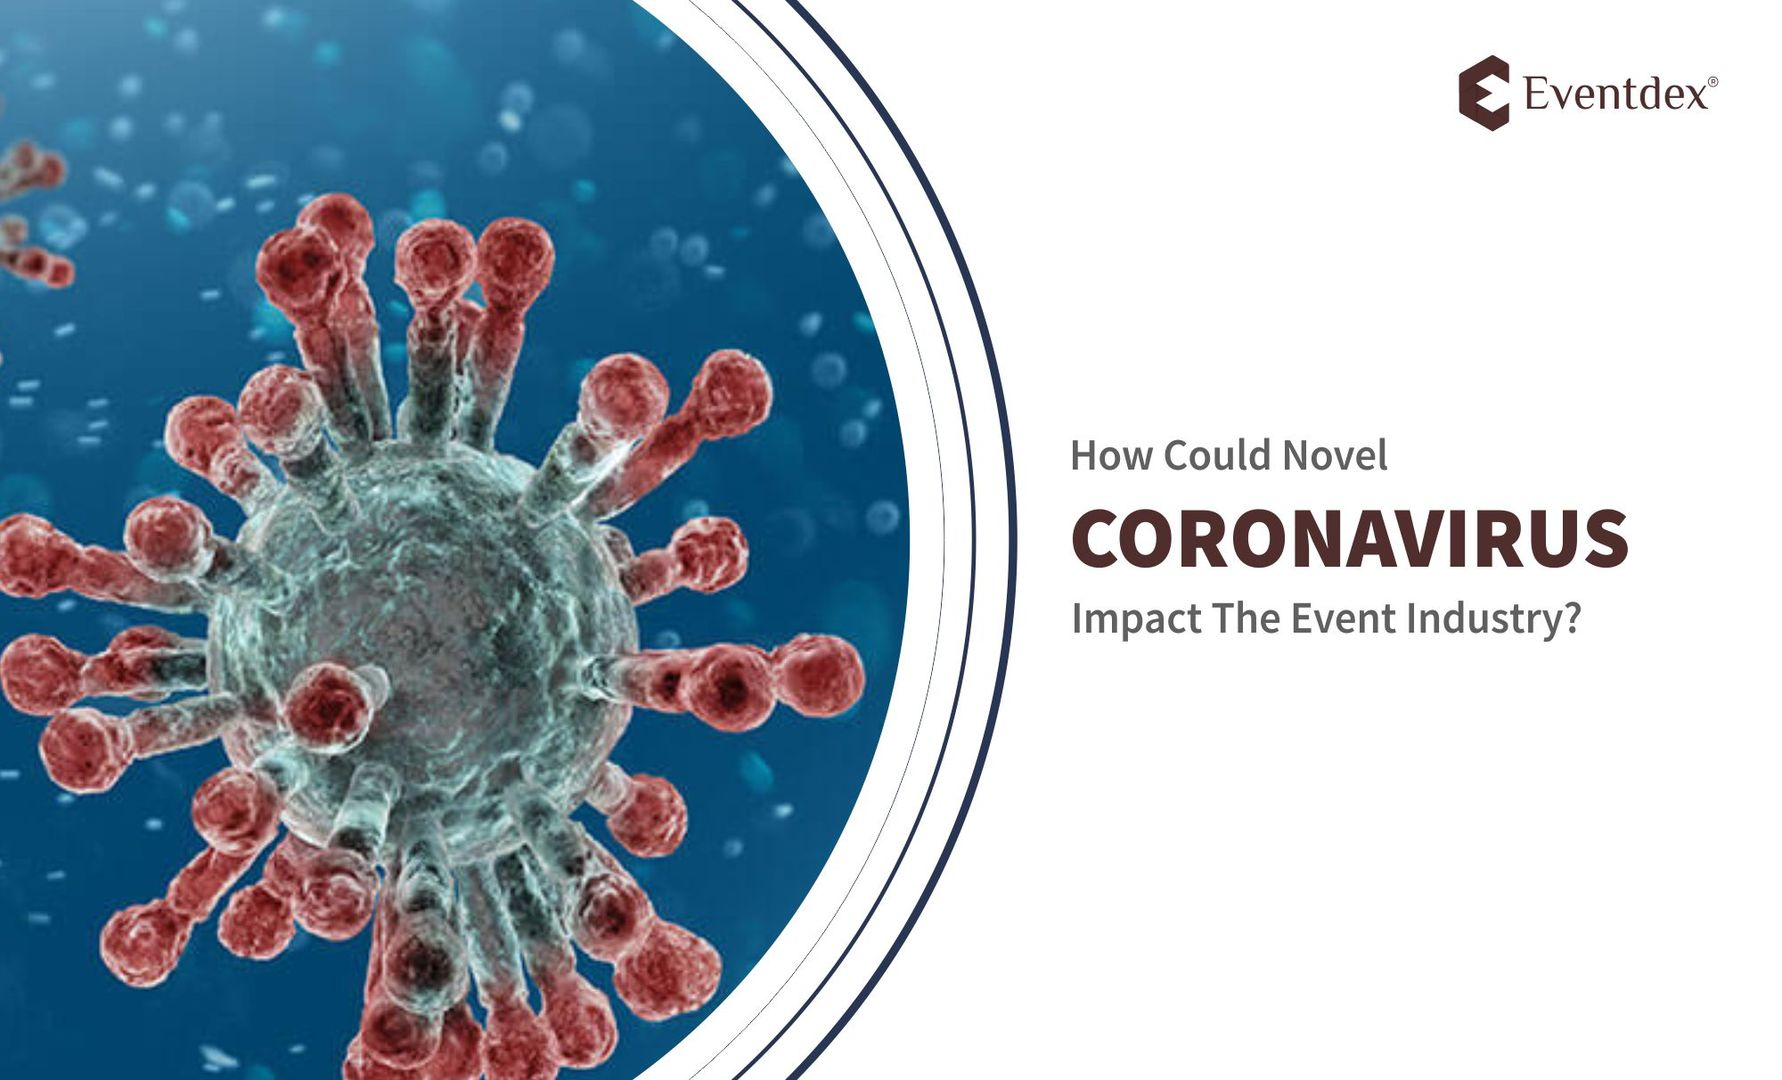 How Could Novel Coronavirus Impact The Event Industry?